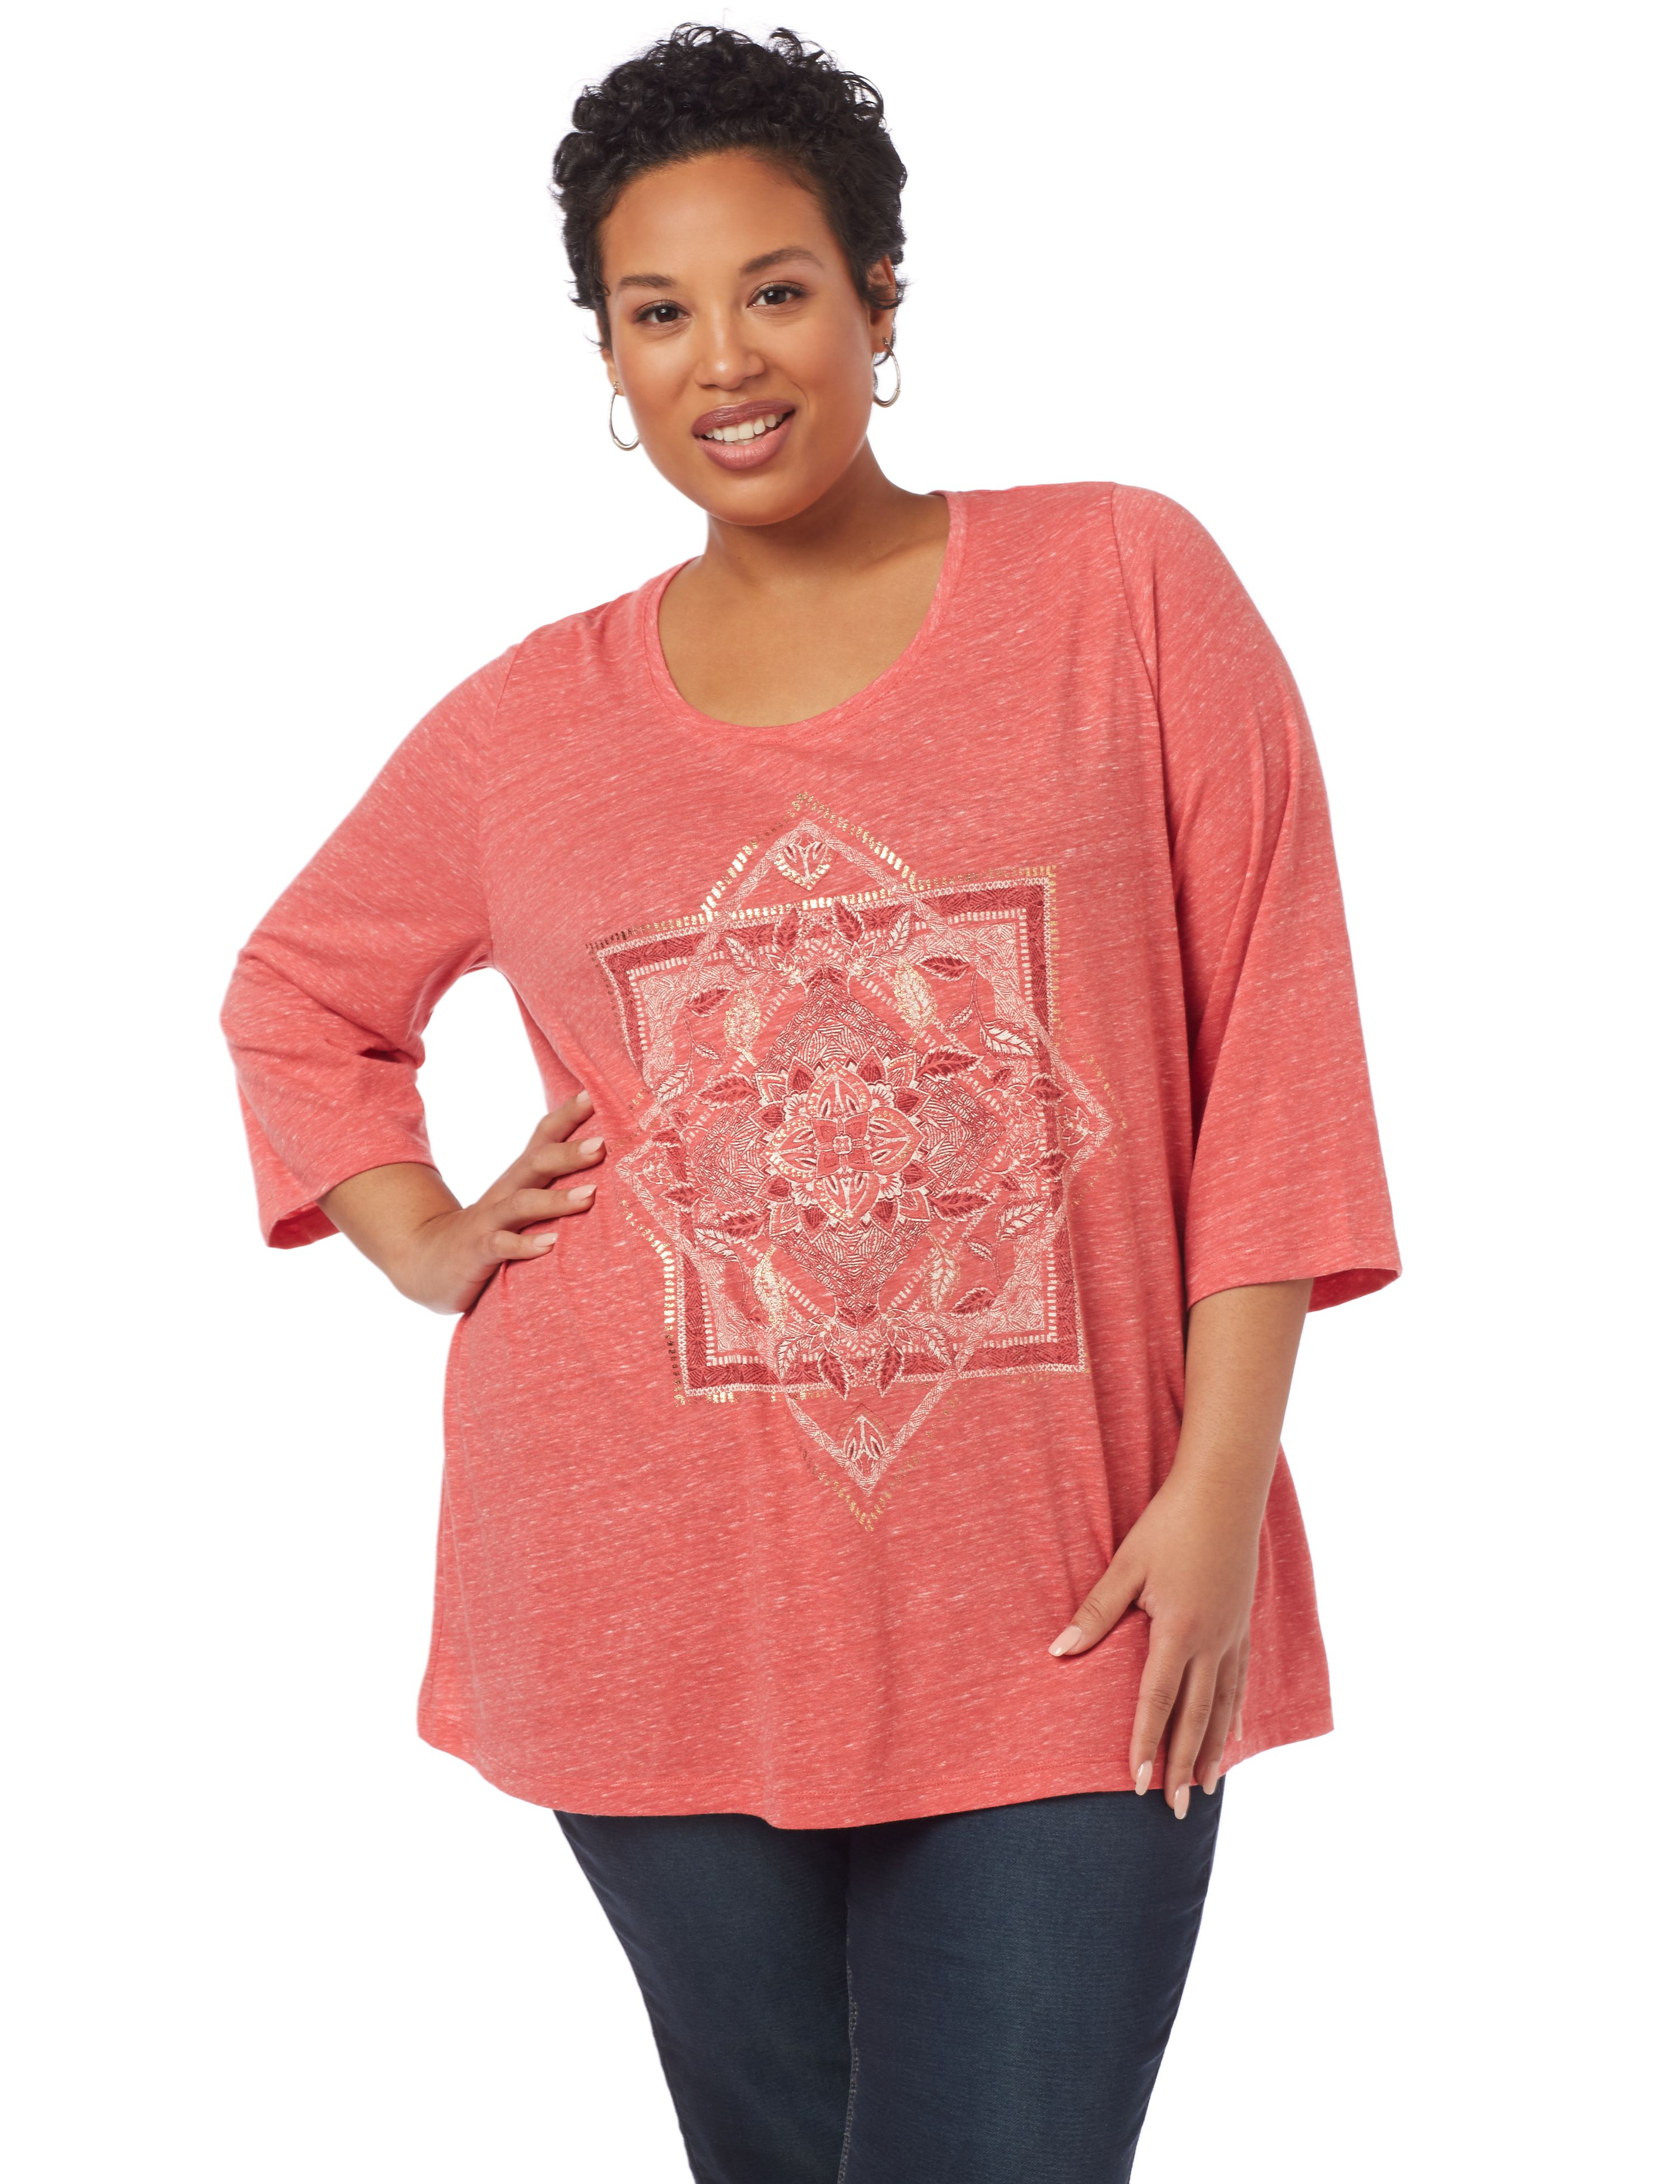 Stay Centered 3/4-Sleeve Top 1091104 SQUARE/TRIANGLE SCREEN MP-300094759